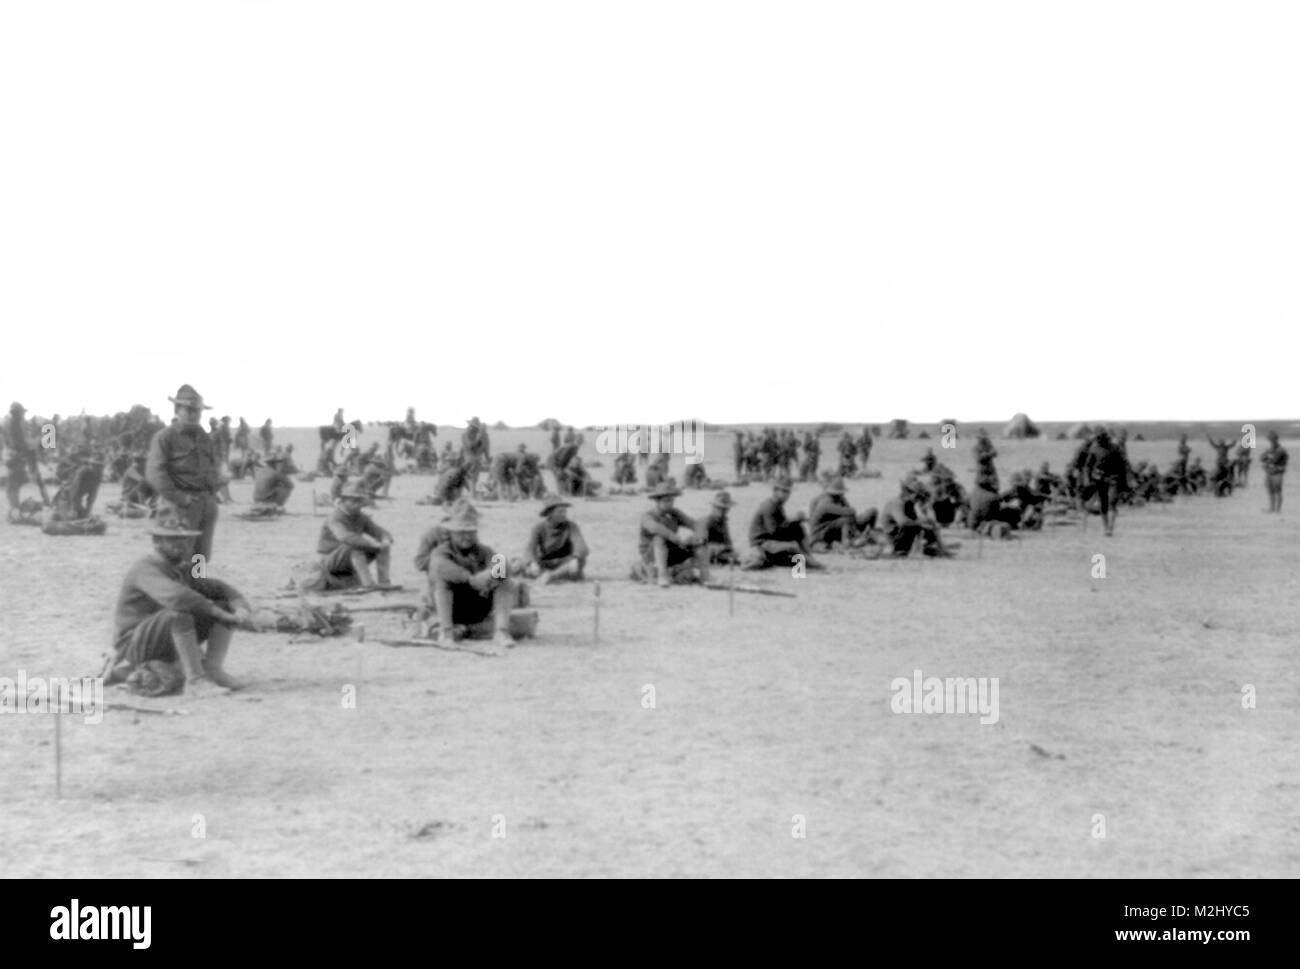 Pancho Villa Expedition, 6th Infantry, 1916 - Stock Image